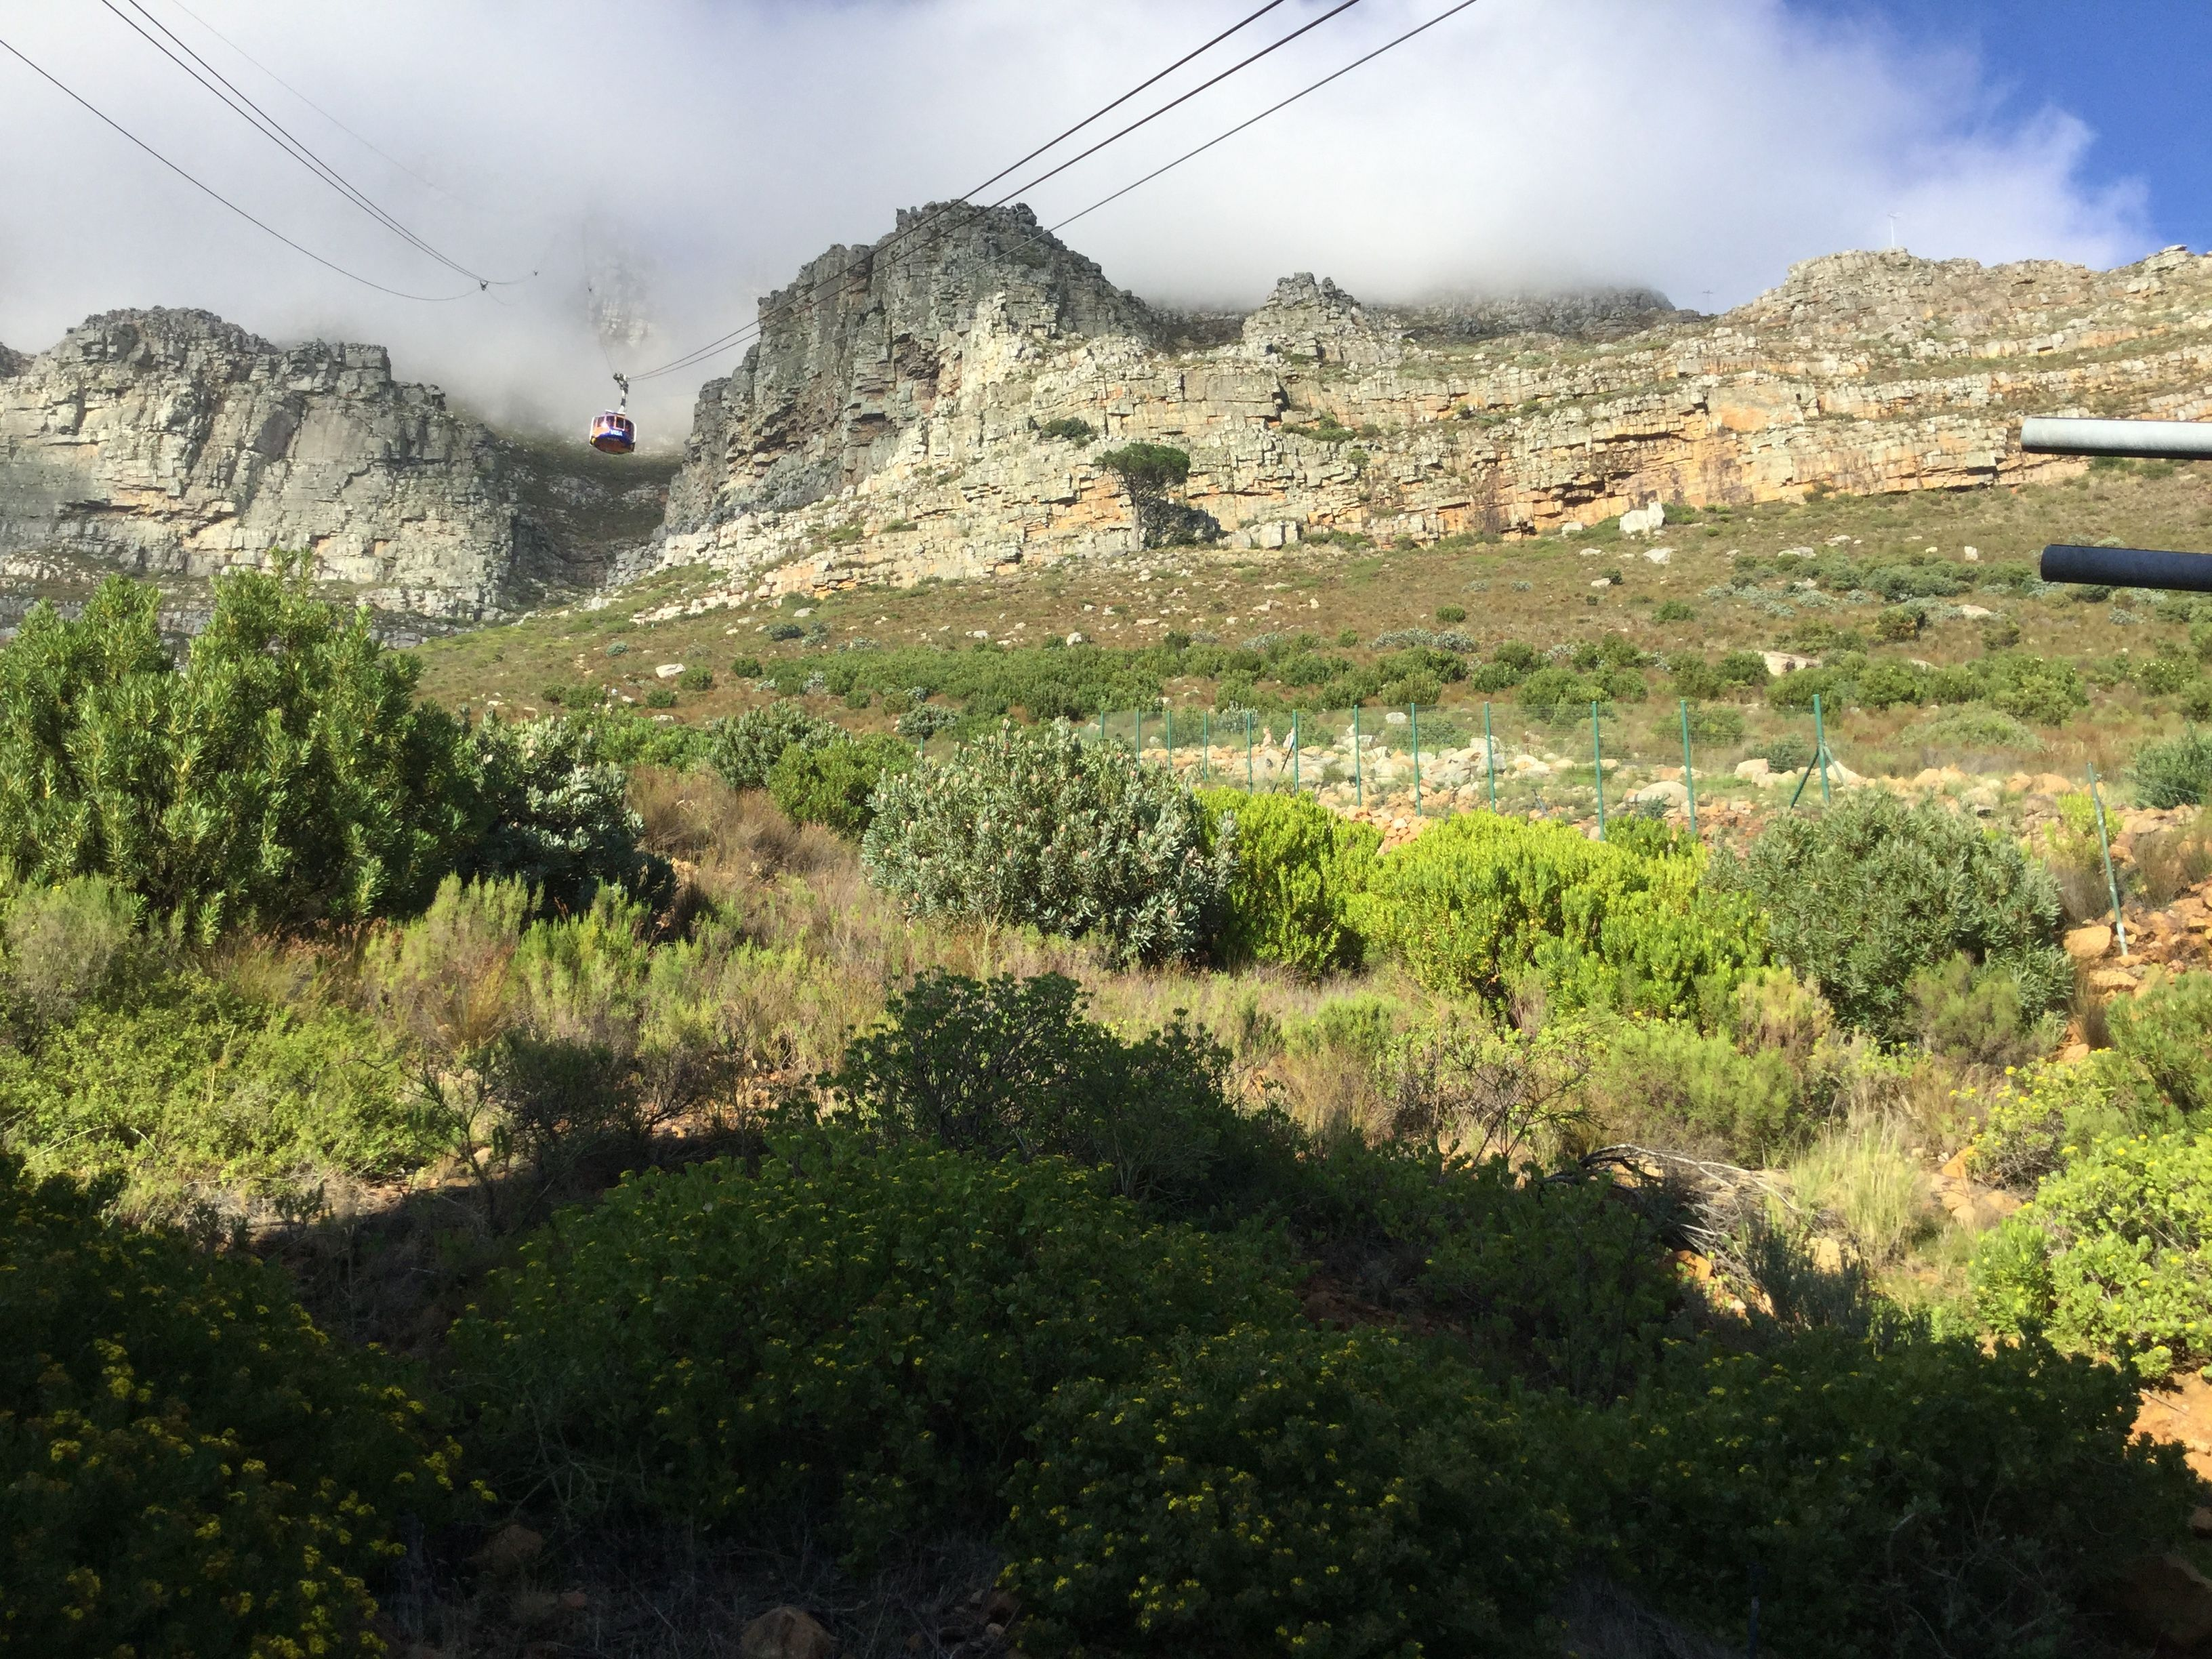 Pin By Clarissa Murpy On Table Top Mountain South Africa Pinterest - Table top mountain south africa